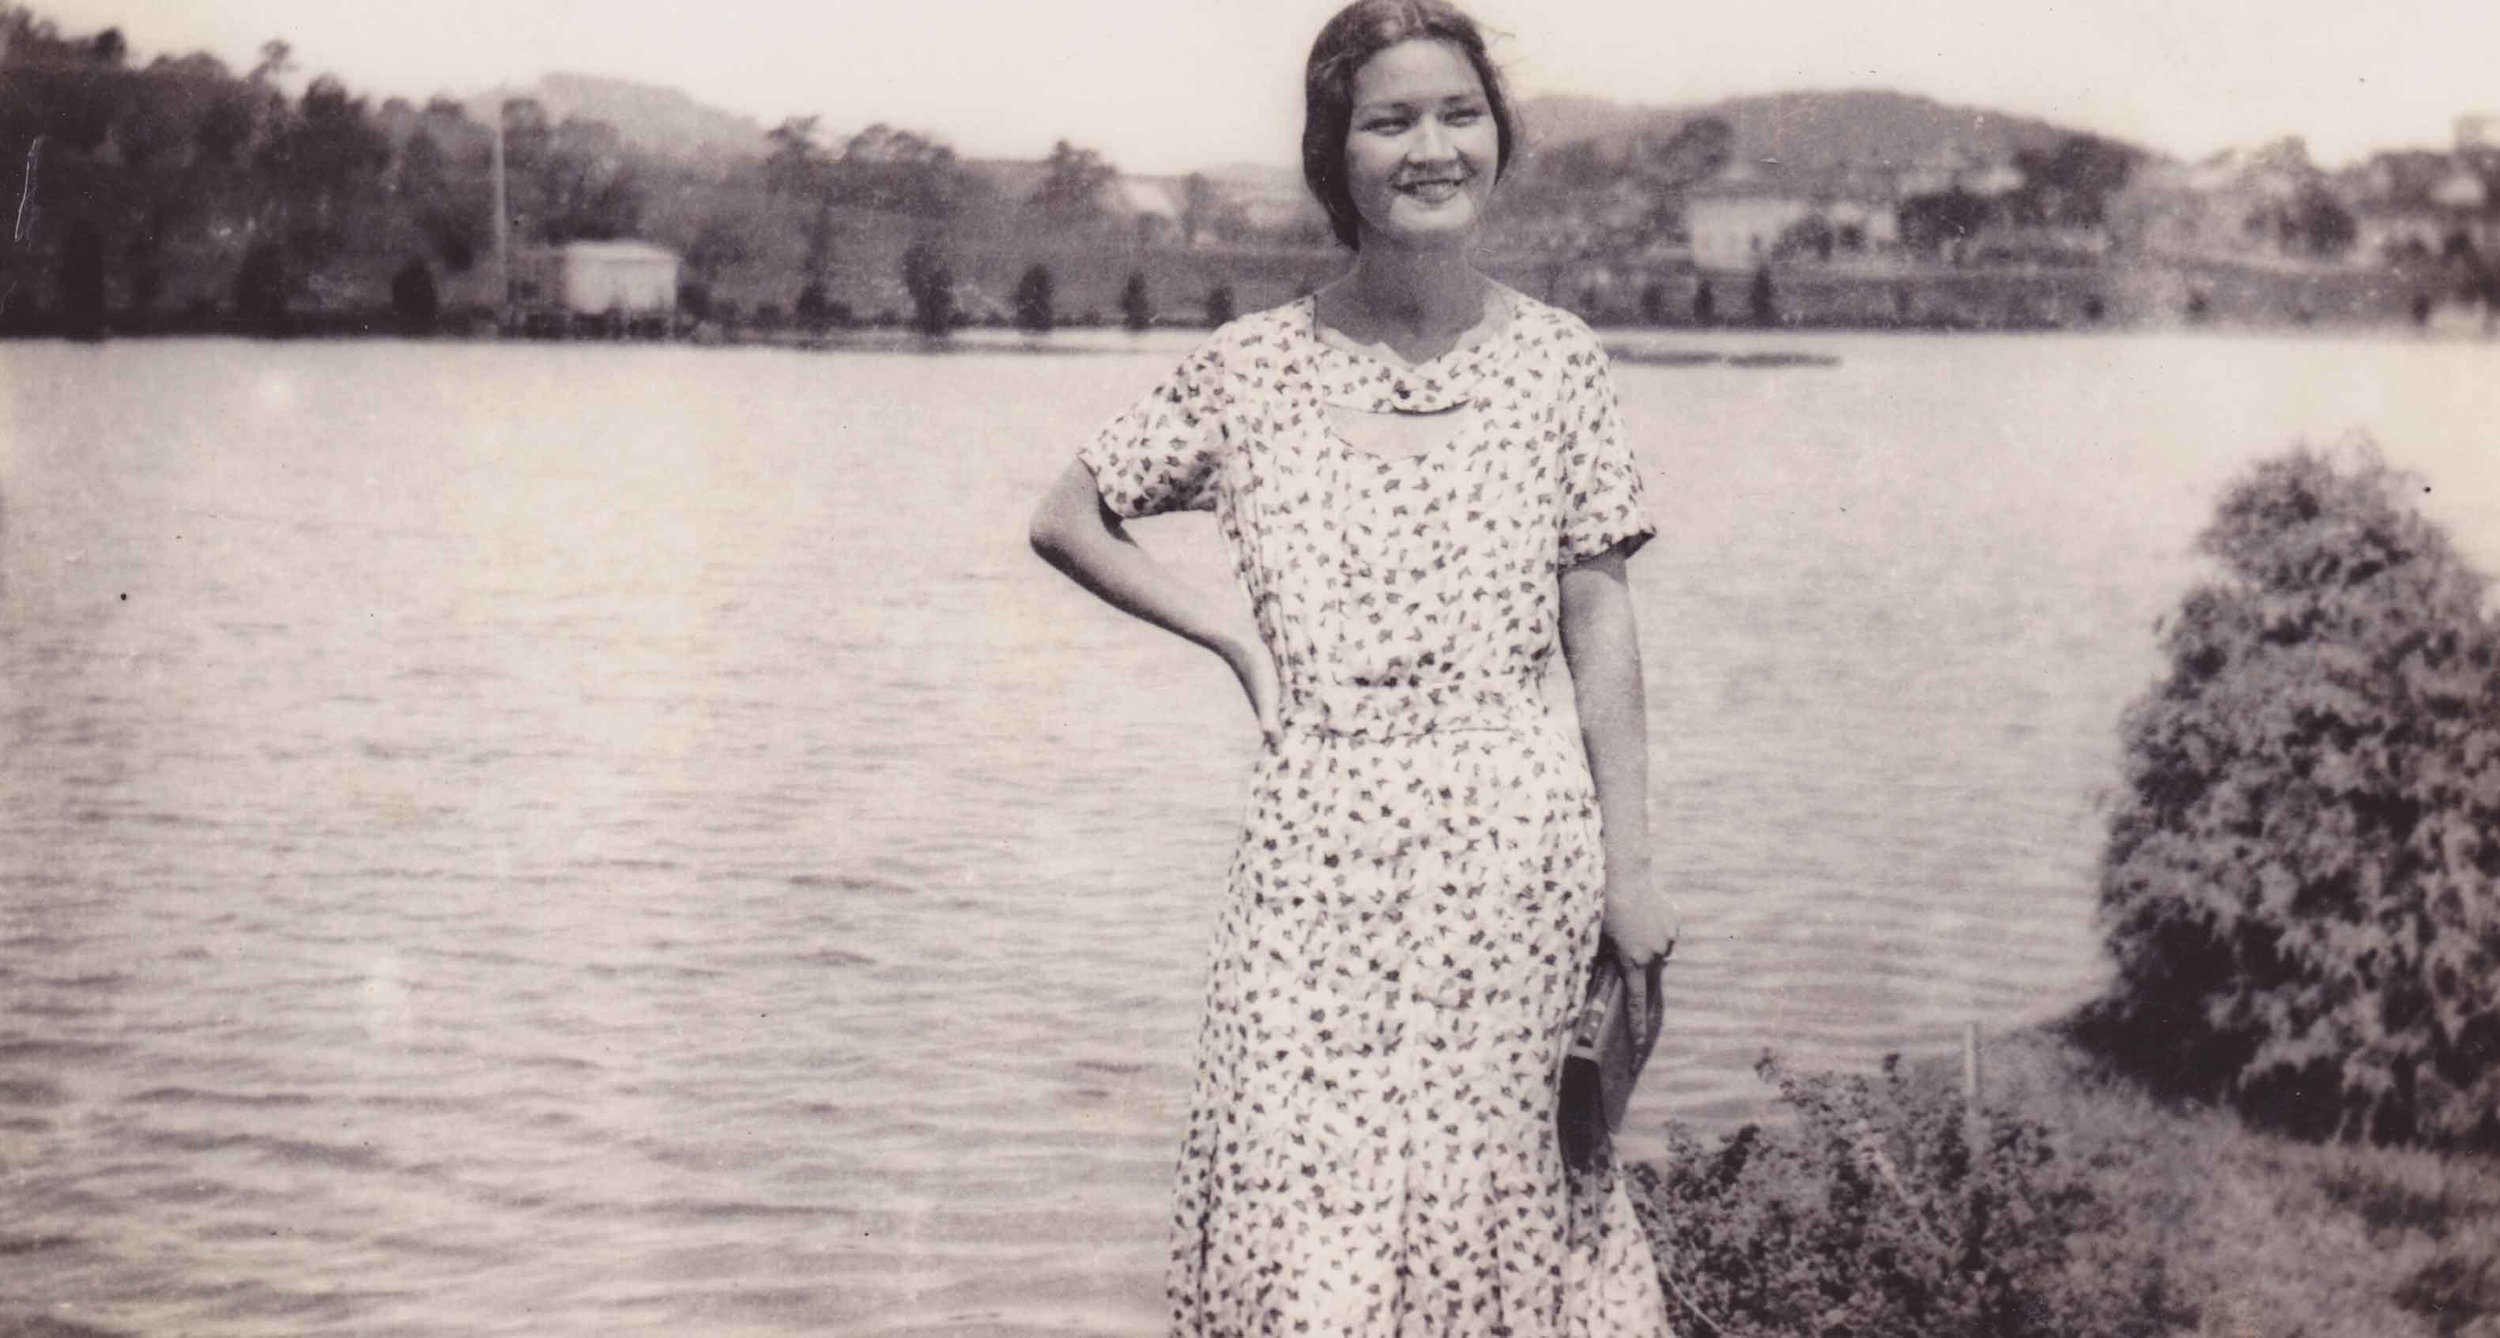 Marciana Sobrino Bonnivier, also known as Mama Chianang, at Burham Lake in Baguio, Philippines. Circa early 1930s. She is the mother of Carlene Sobrino Bonnivier.